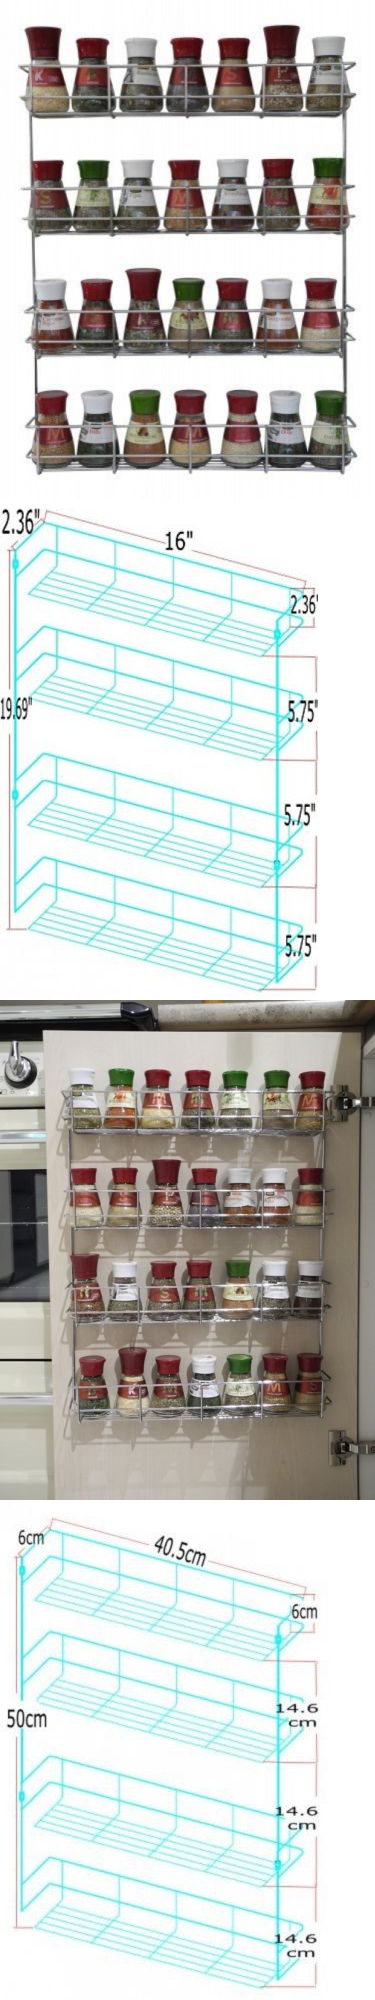 Spice Jars And Racks 20646: 4 Tier Spice Rack   Cabinet Door And Wall  Mountable